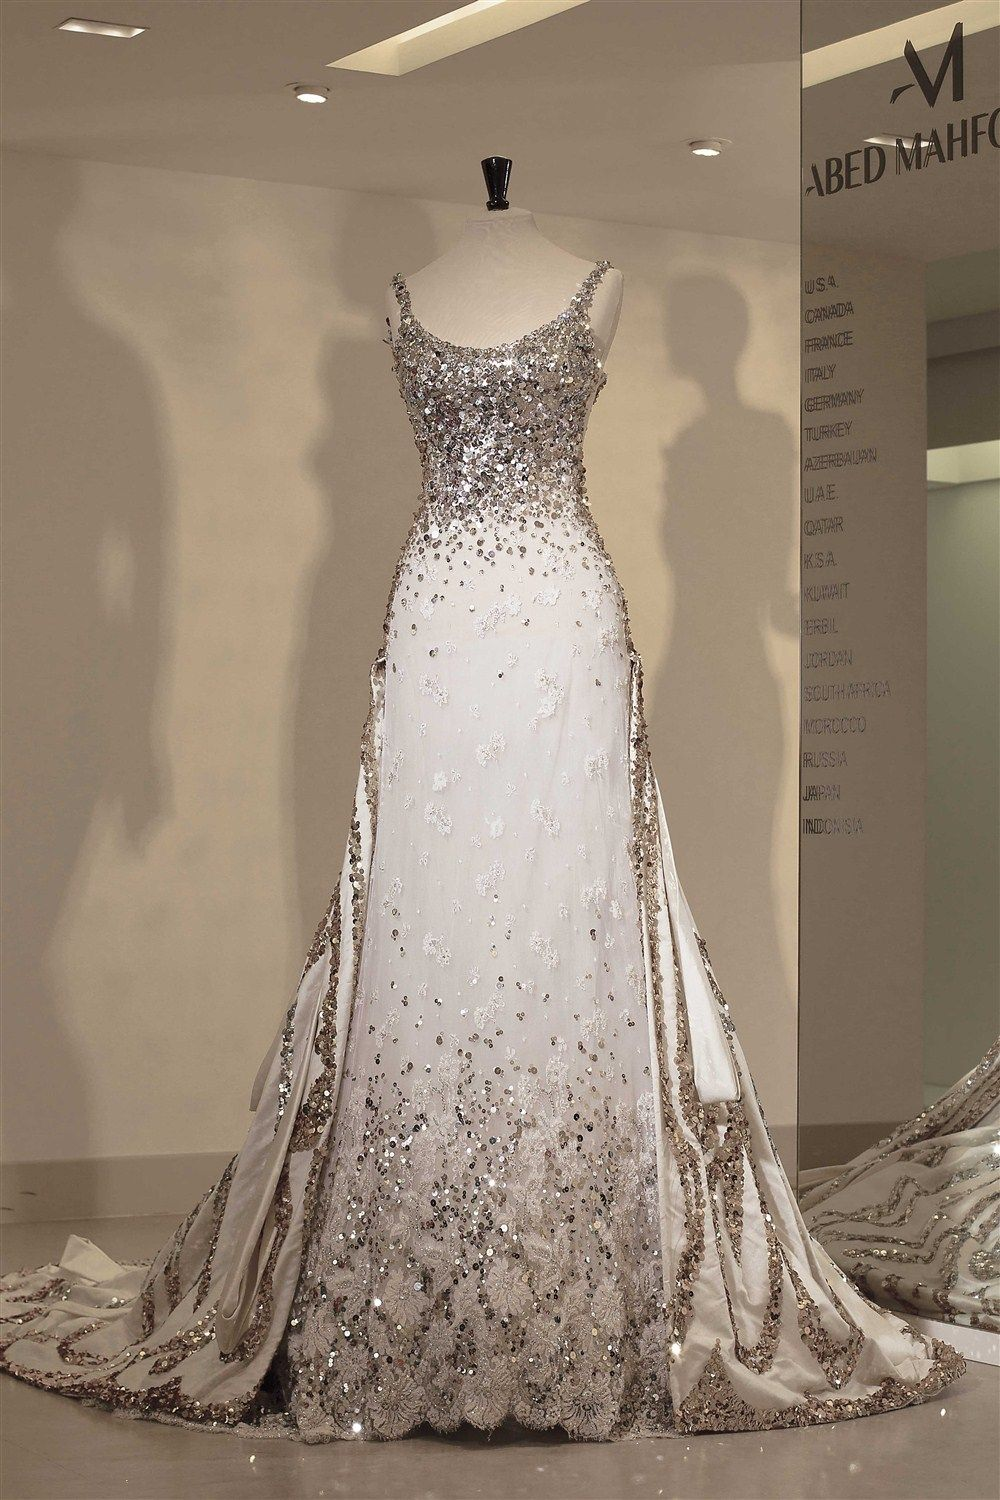 Abed mahfouz collection bridal halima this is a magical